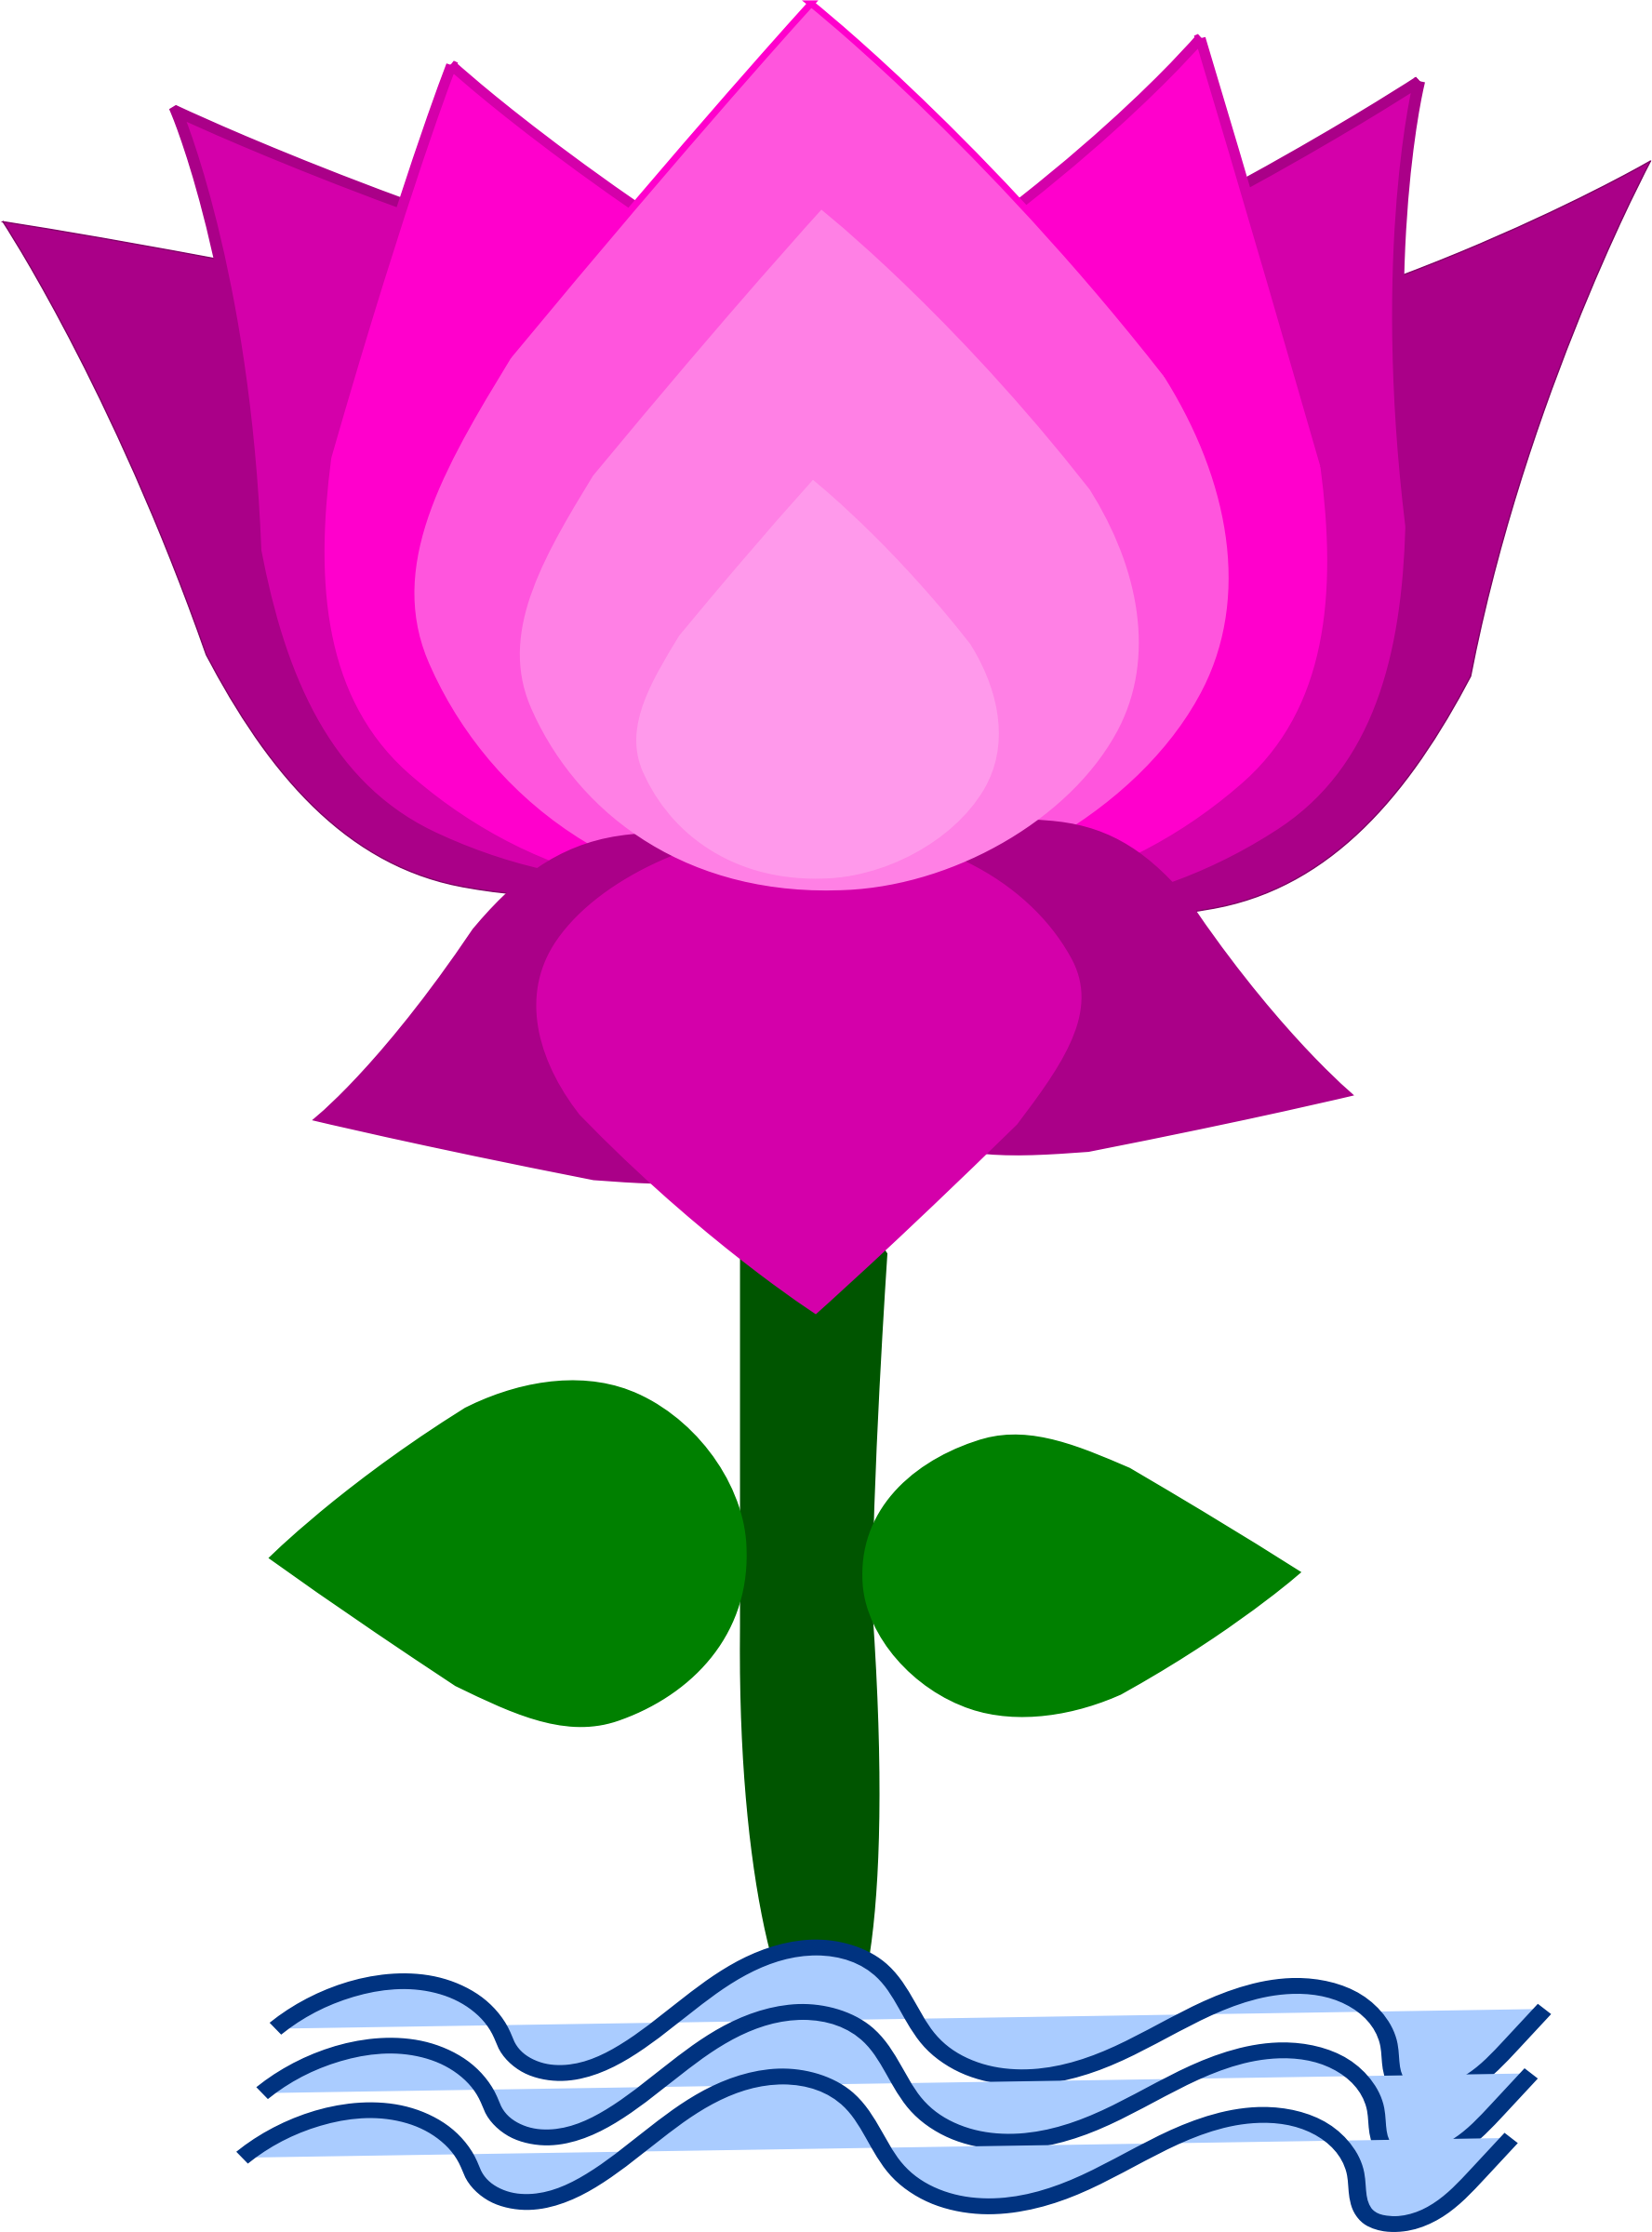 Lotus flower clipart free download clipart transparent download Lotus Flower Clipart | Free download best Lotus Flower ... clipart transparent download